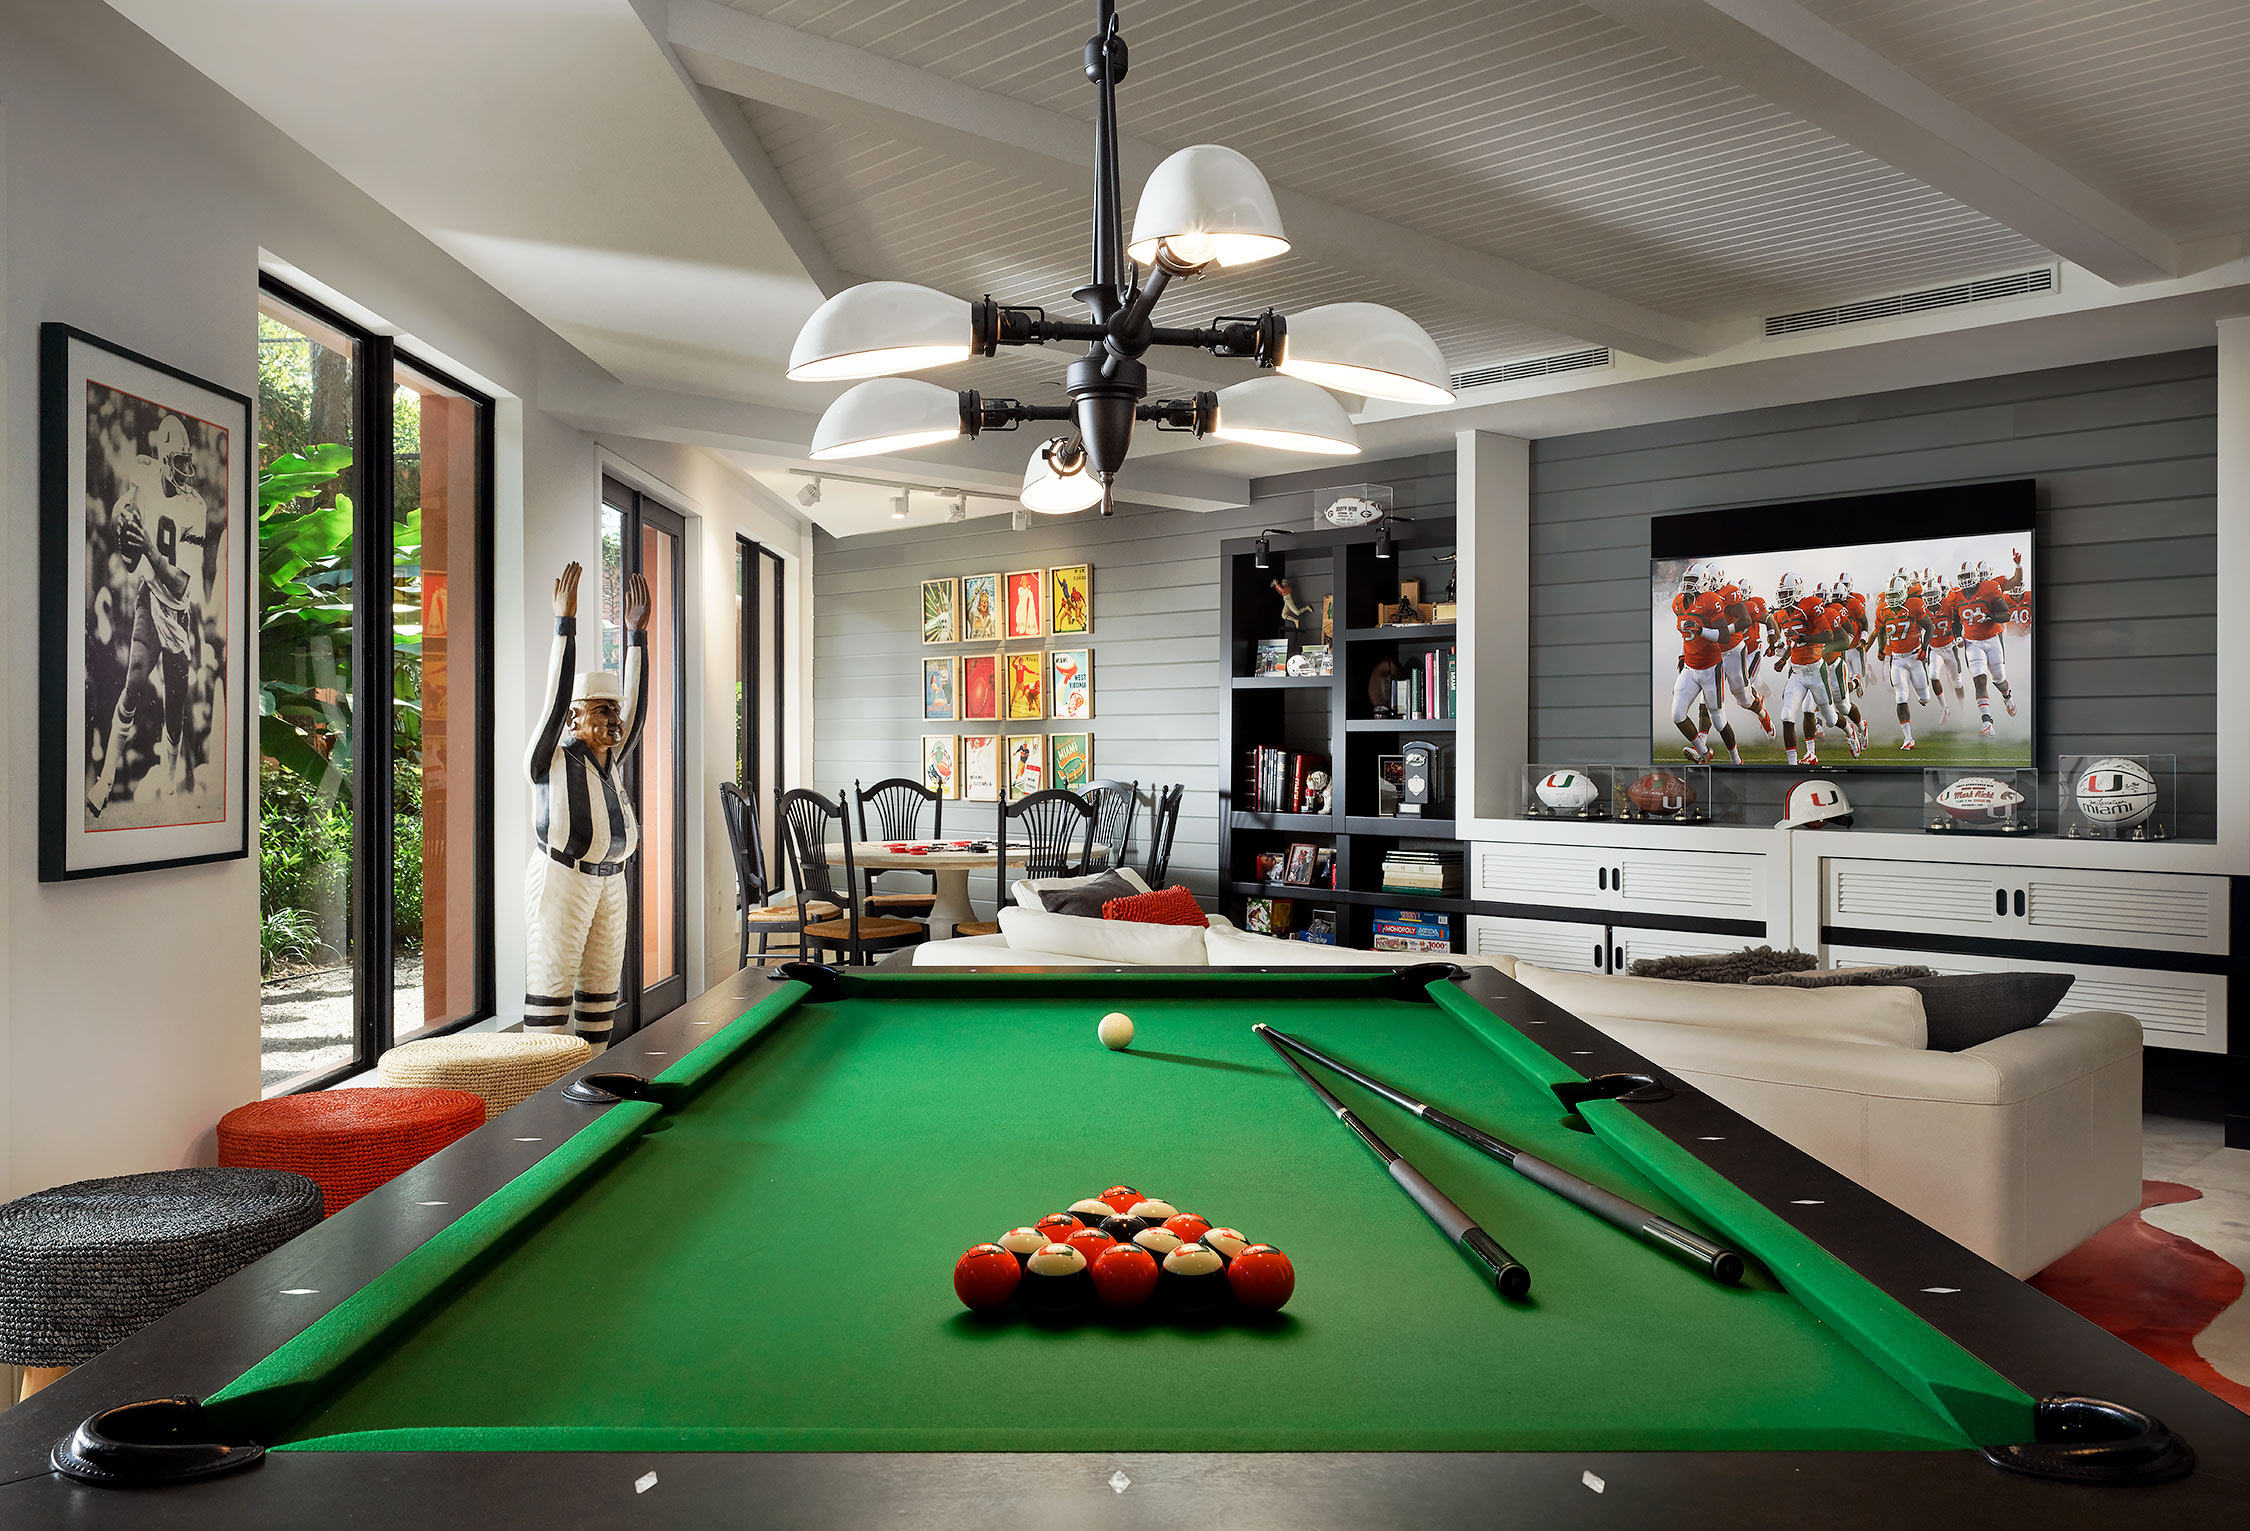 Billiards-Luxury-Residence-Game-Room